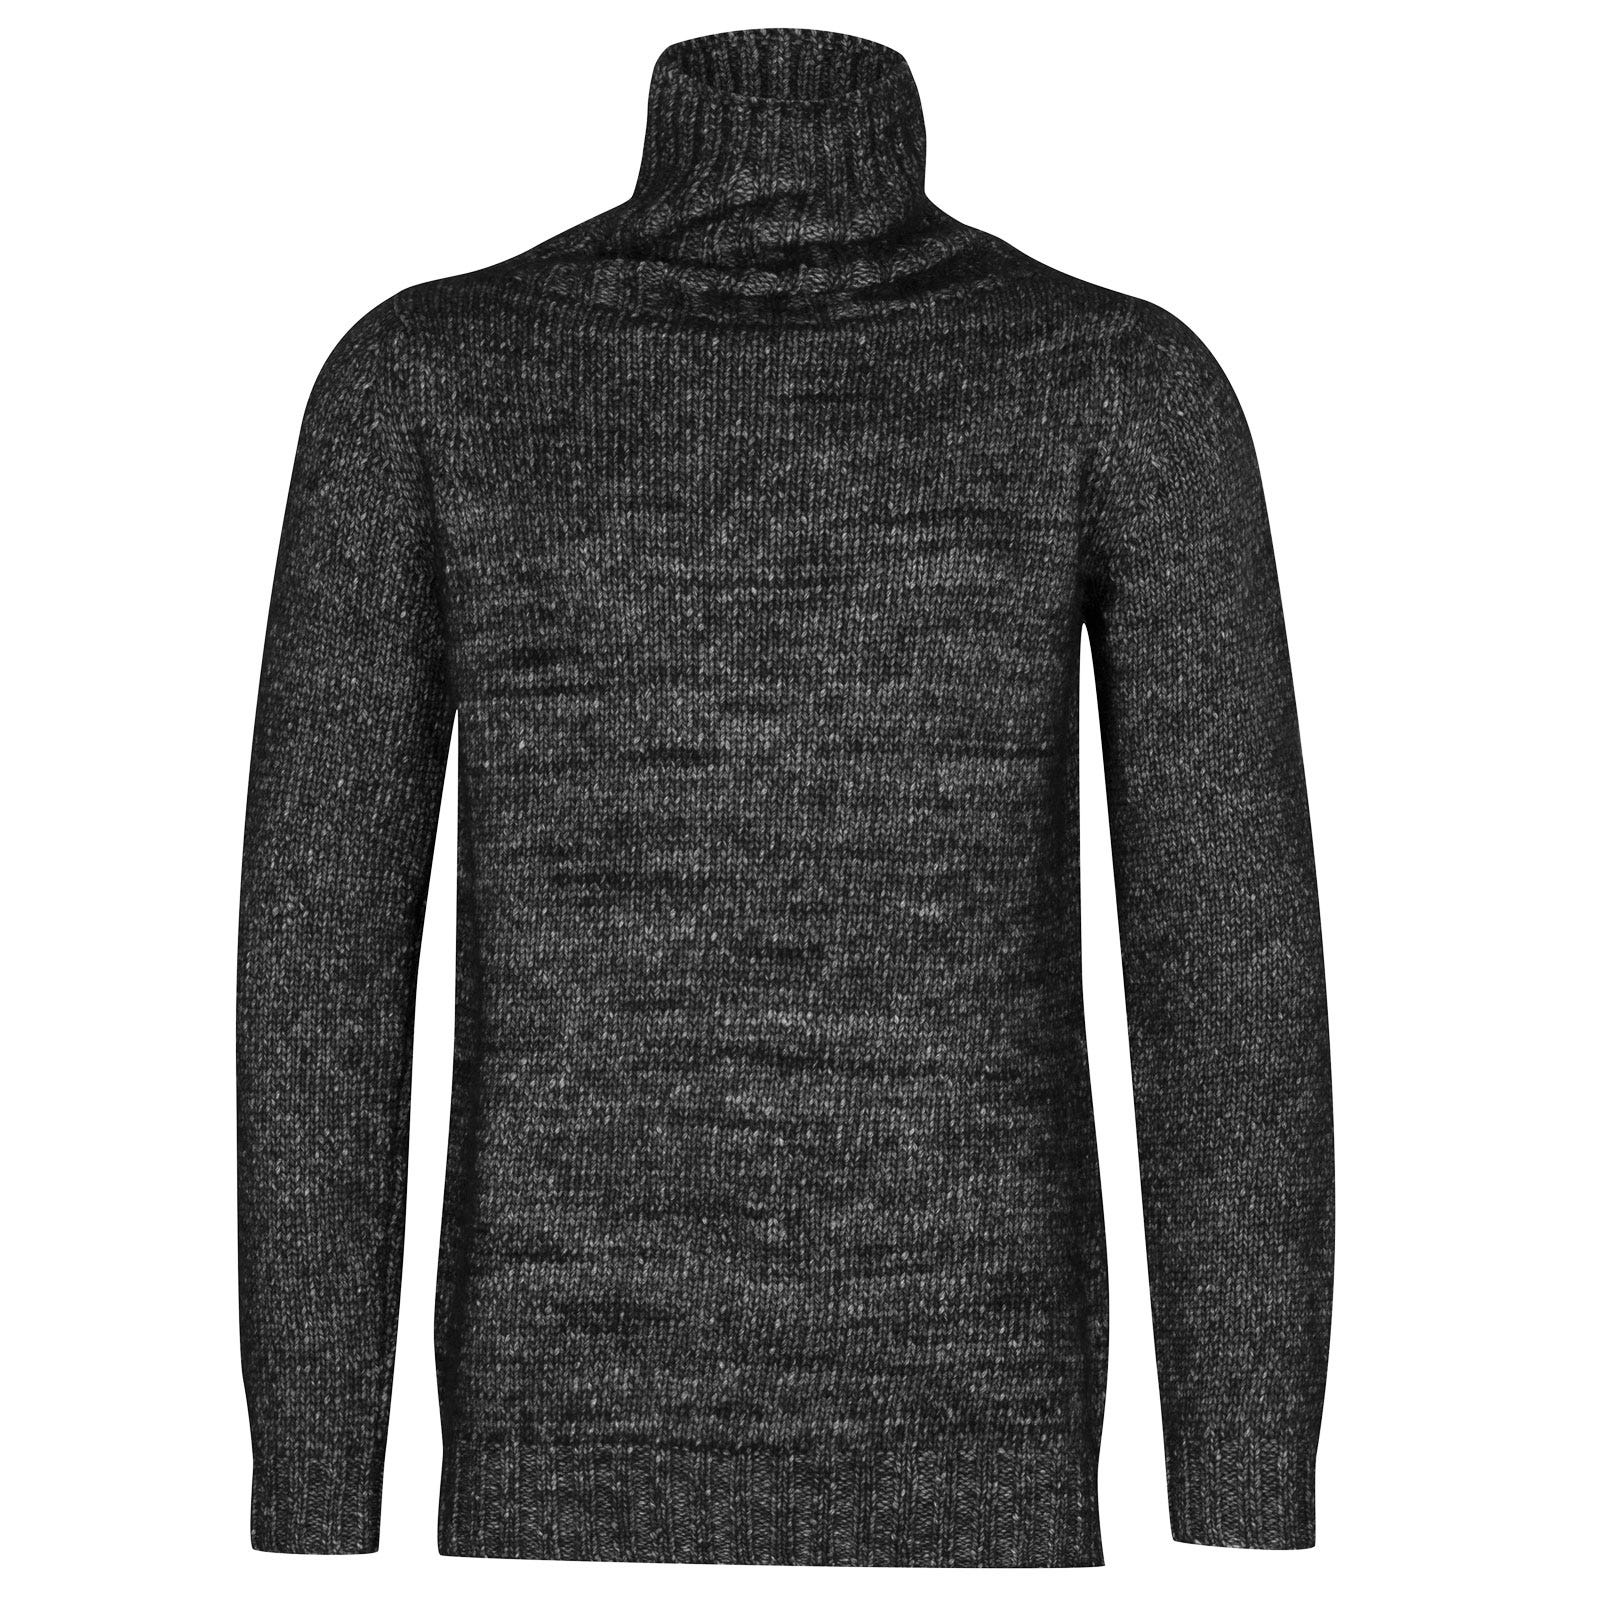 John Smedley kilbreck Alpaca, Wool & Cotton Pullover in Black-XXL